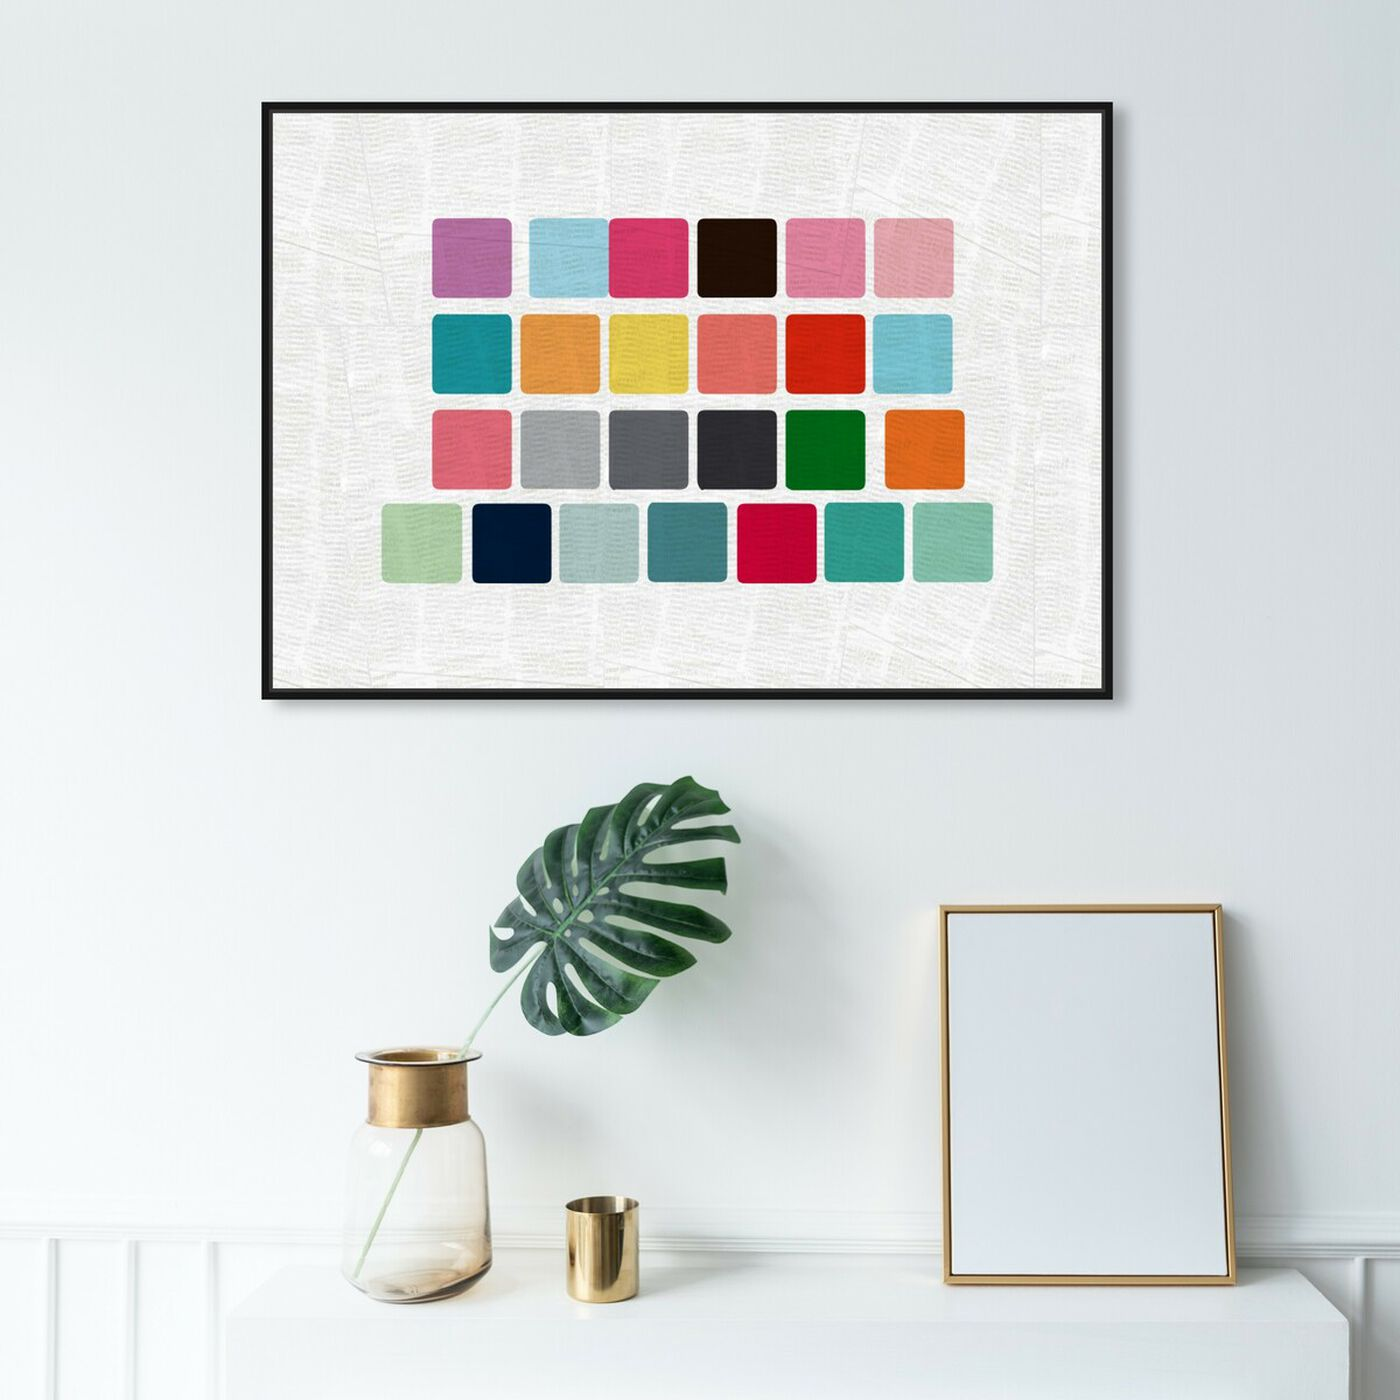 Hanging view of More Cubic featuring abstract and geometric art.